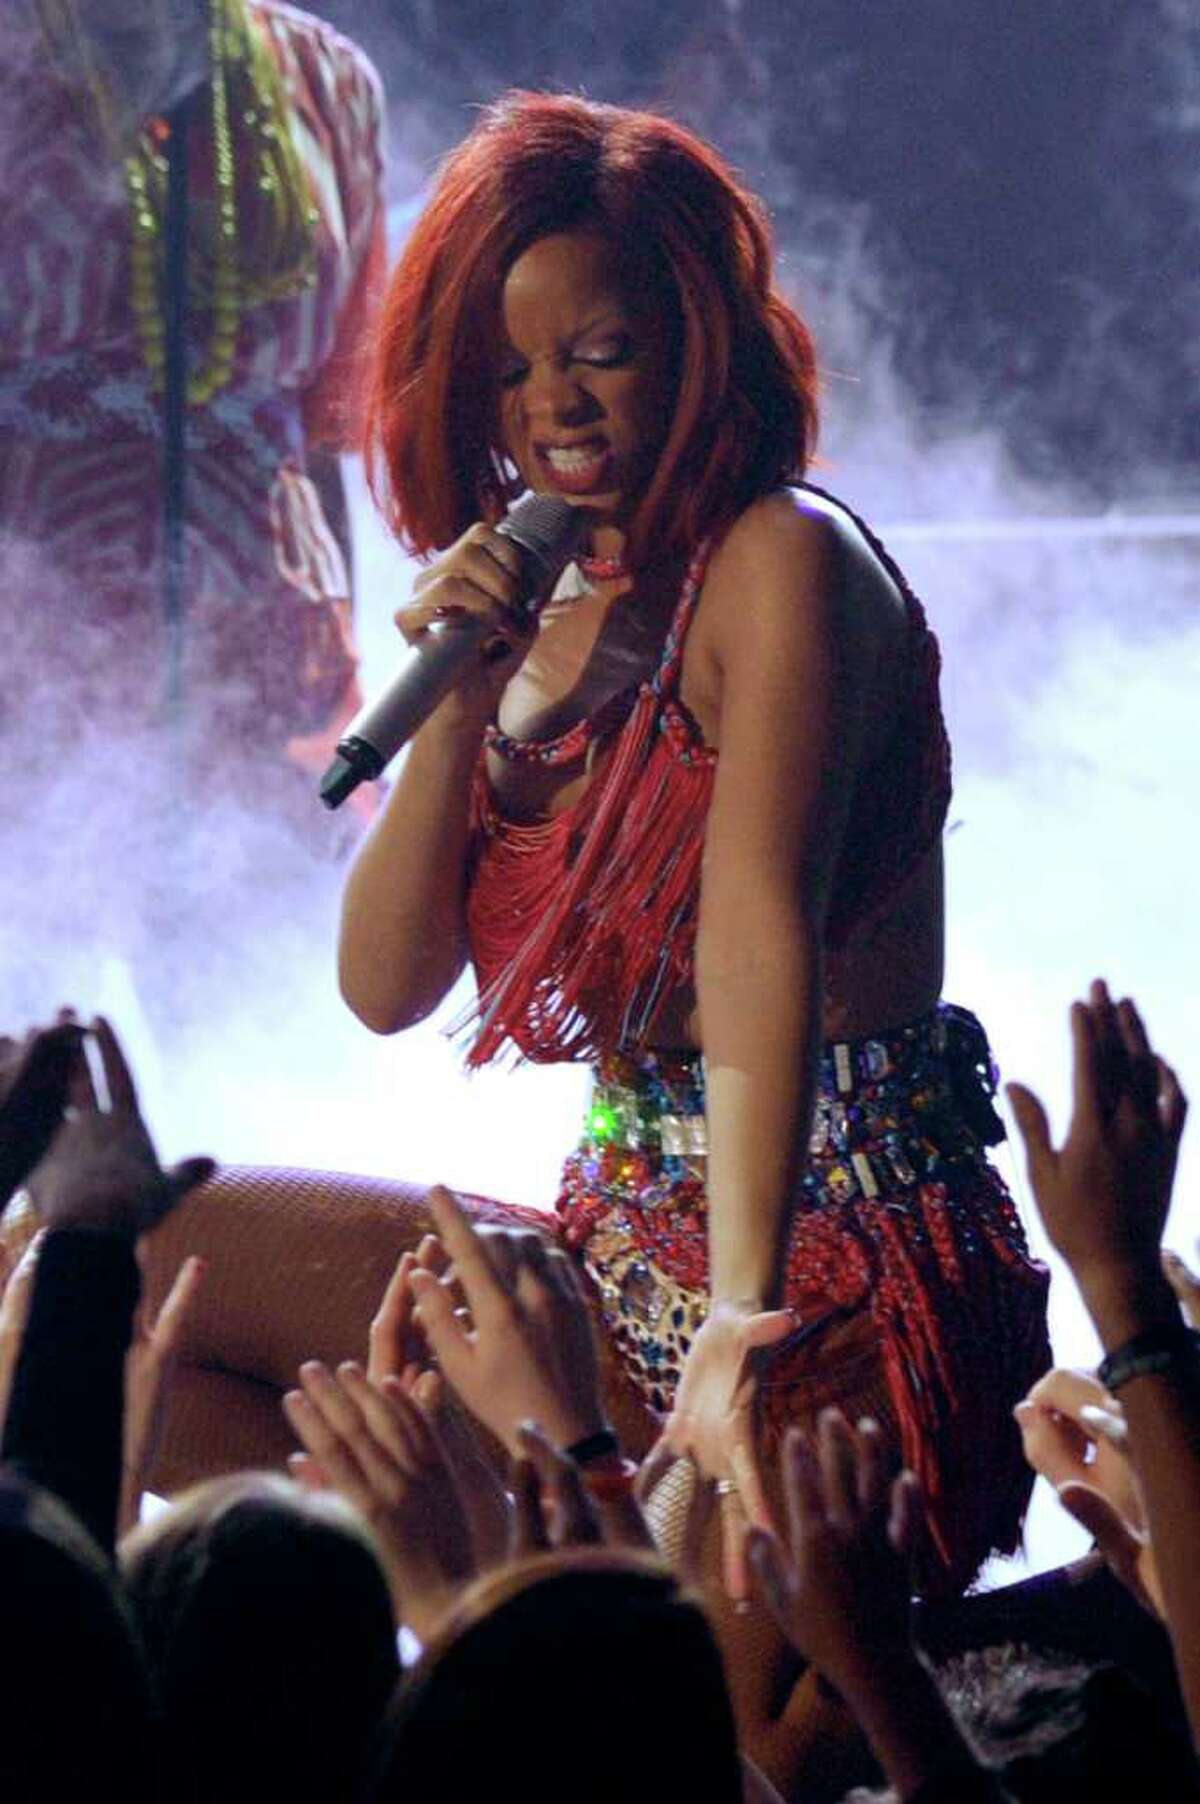 LOS ANGELES, CA - FEBRUARY 13: Rihanna performs onstage during The 53rd Annual GRAMMY Awards held at Staples Center on February 13, 2011 in Los Angeles, California. (Photo by Kevin Winter/Getty Images) *** Local Caption *** Rihanna